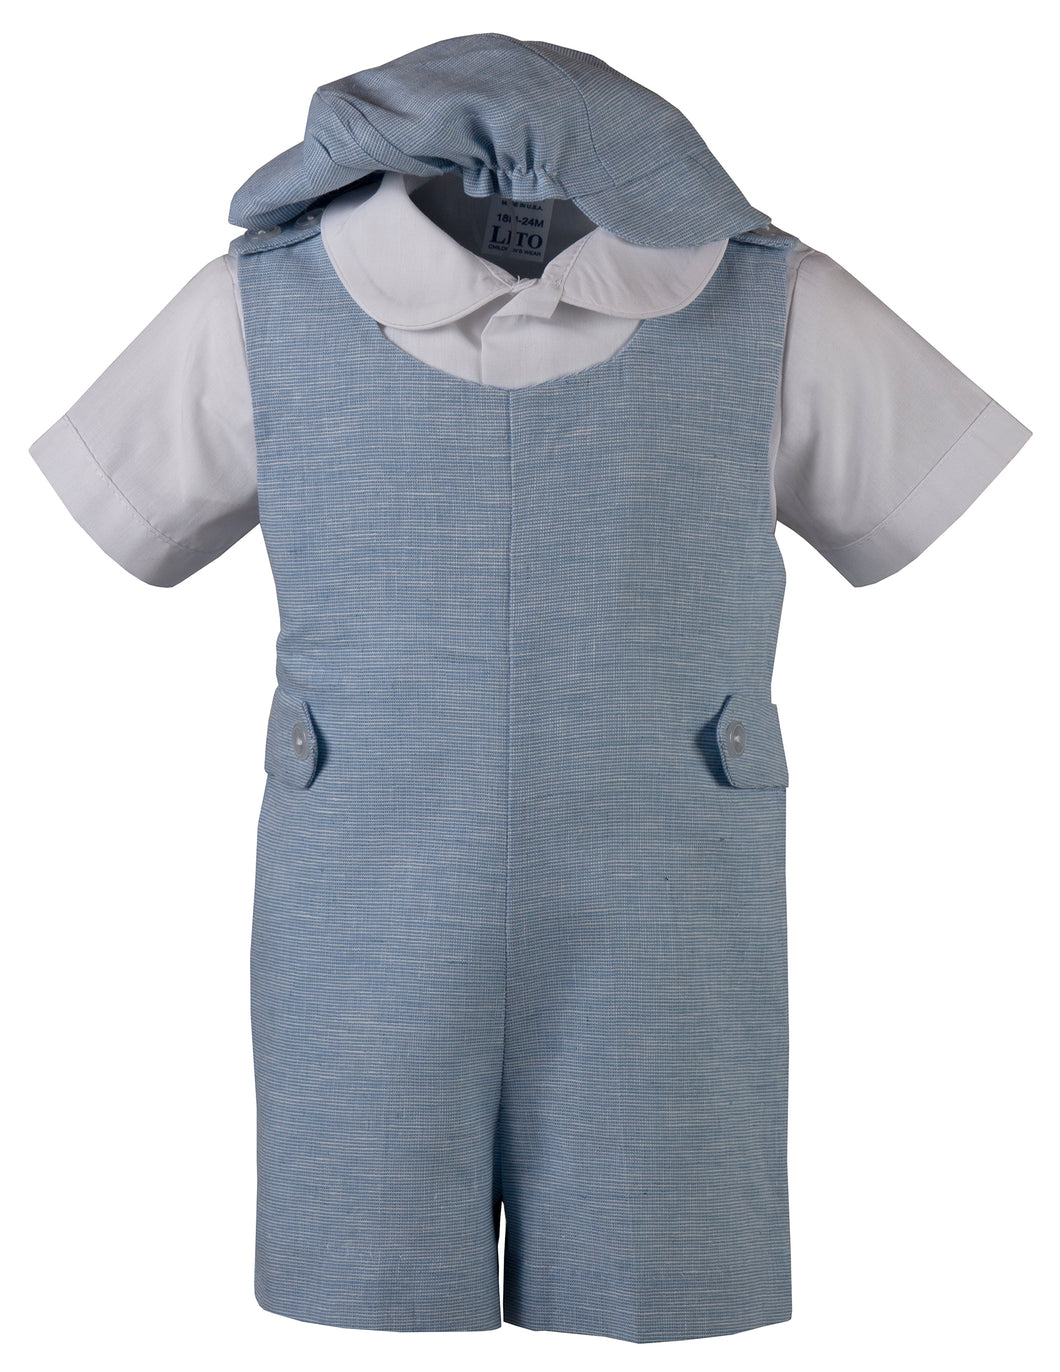 Linen Romper Short Set Outfit with Short Sleeve Shirt (Hudson)